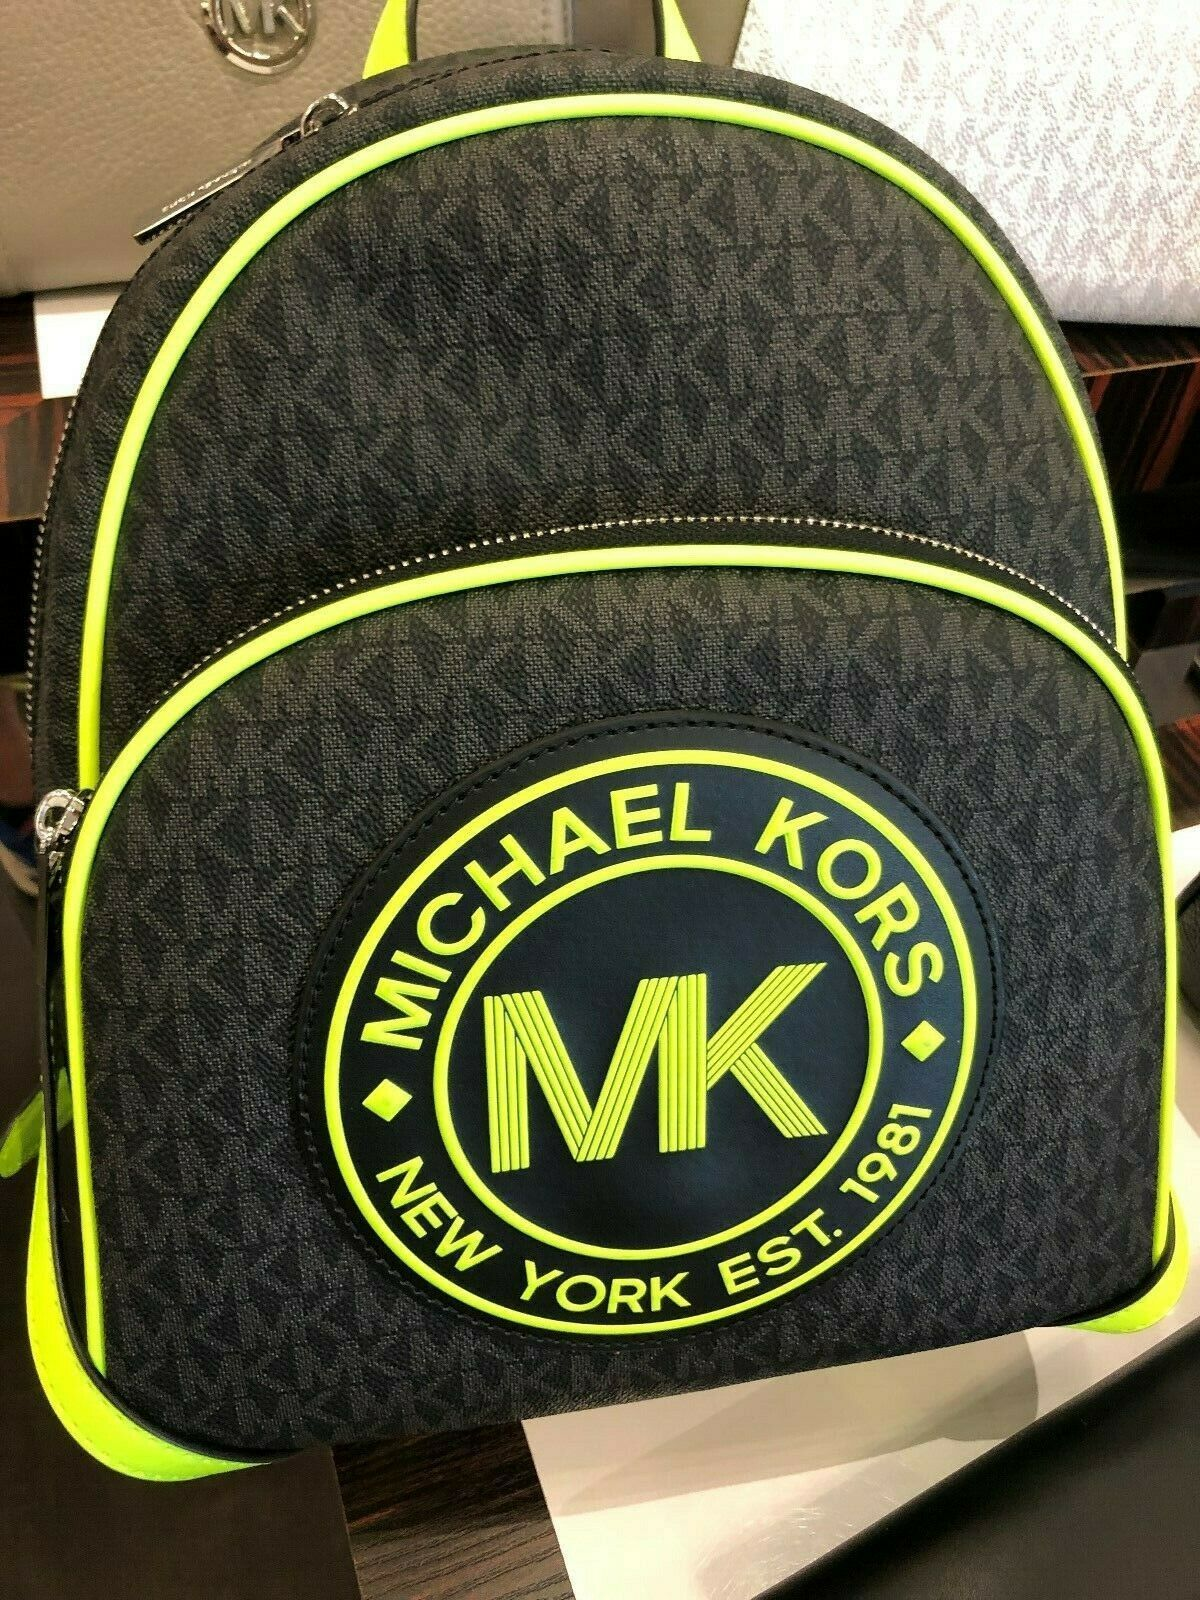 Michael Kors Fulton Sport Medium Black Signature Tech Backpack In Neon Lime $398